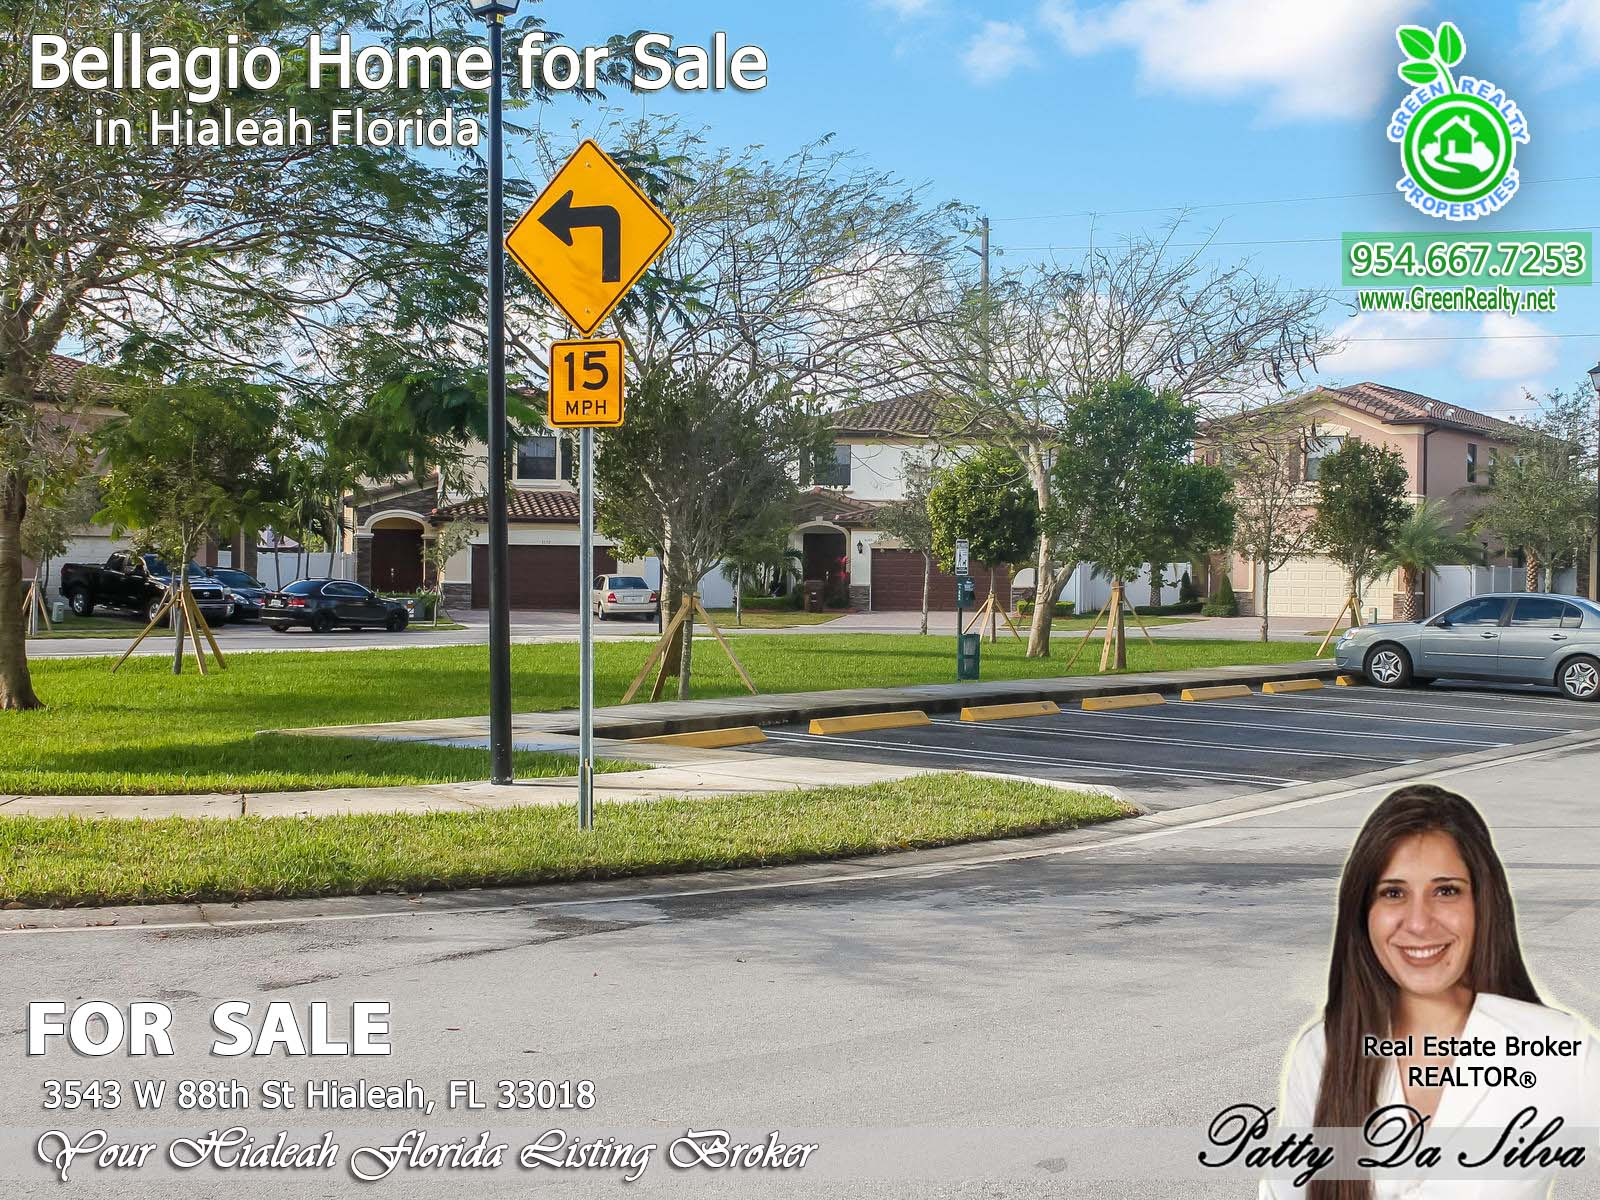 South florida homes for sale by broker Patty da silva of green realty properties (8)